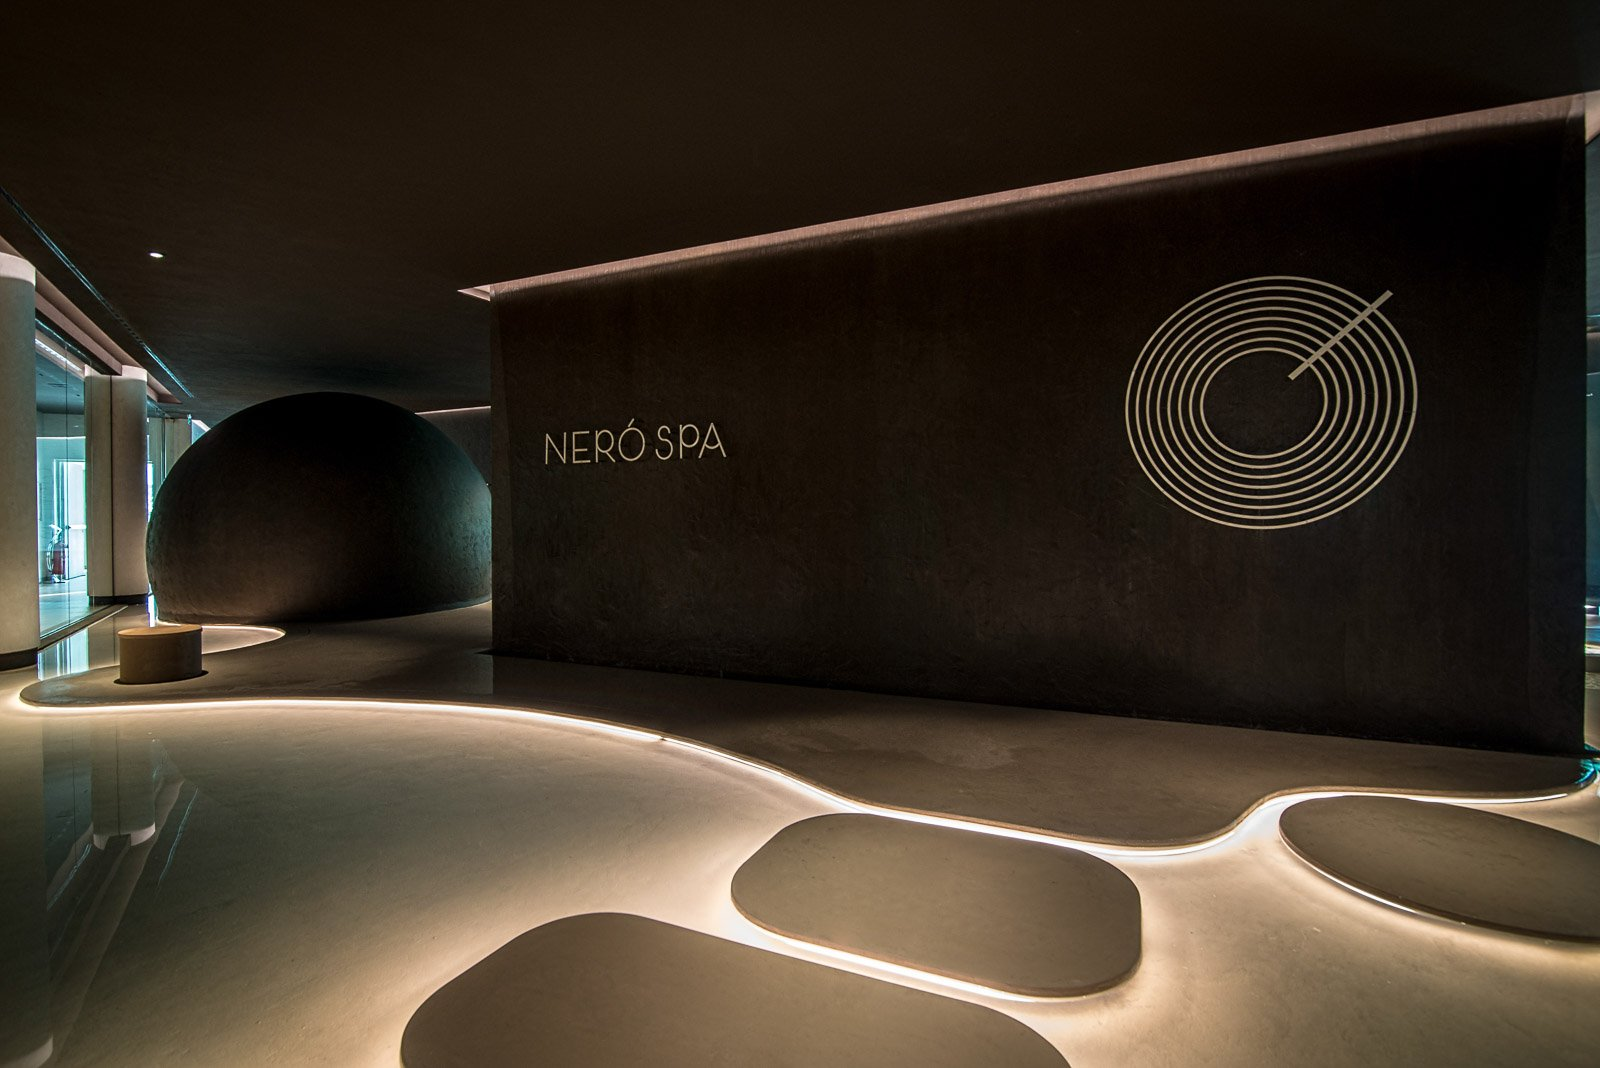 Nerò SPA by Studio Apostoli